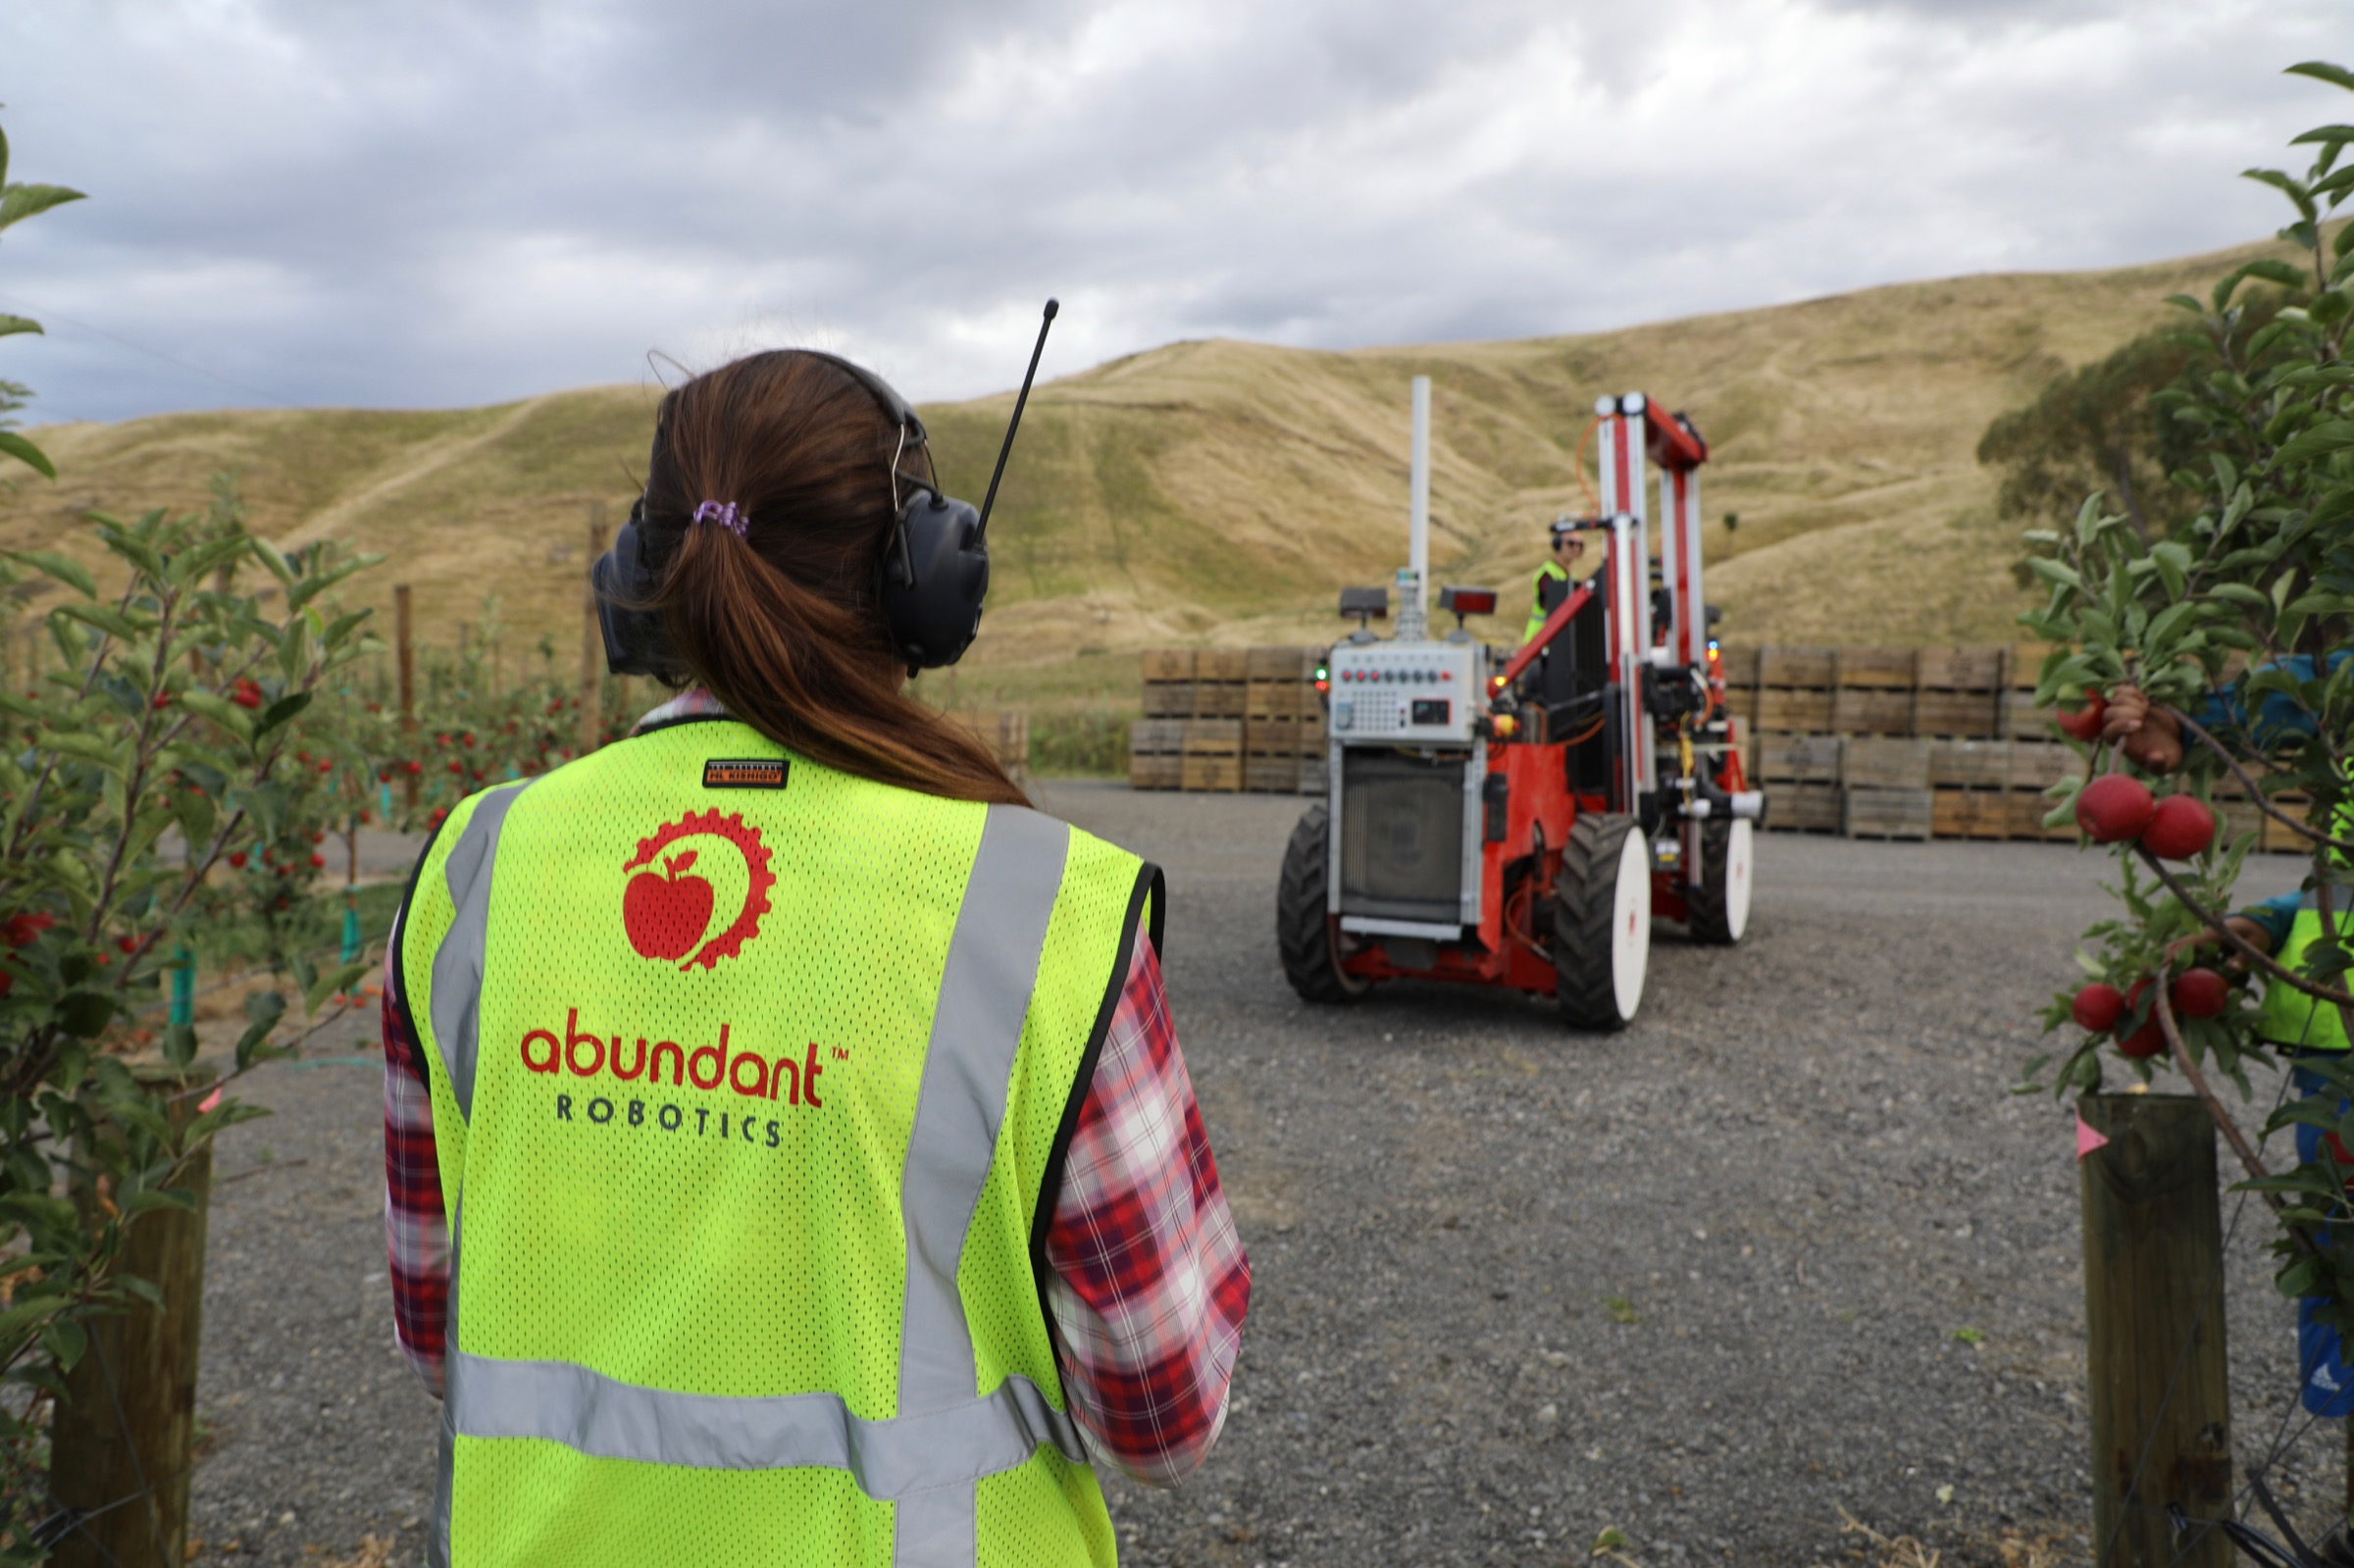 Abundant's apple harvesting robots get their first commercial deployment